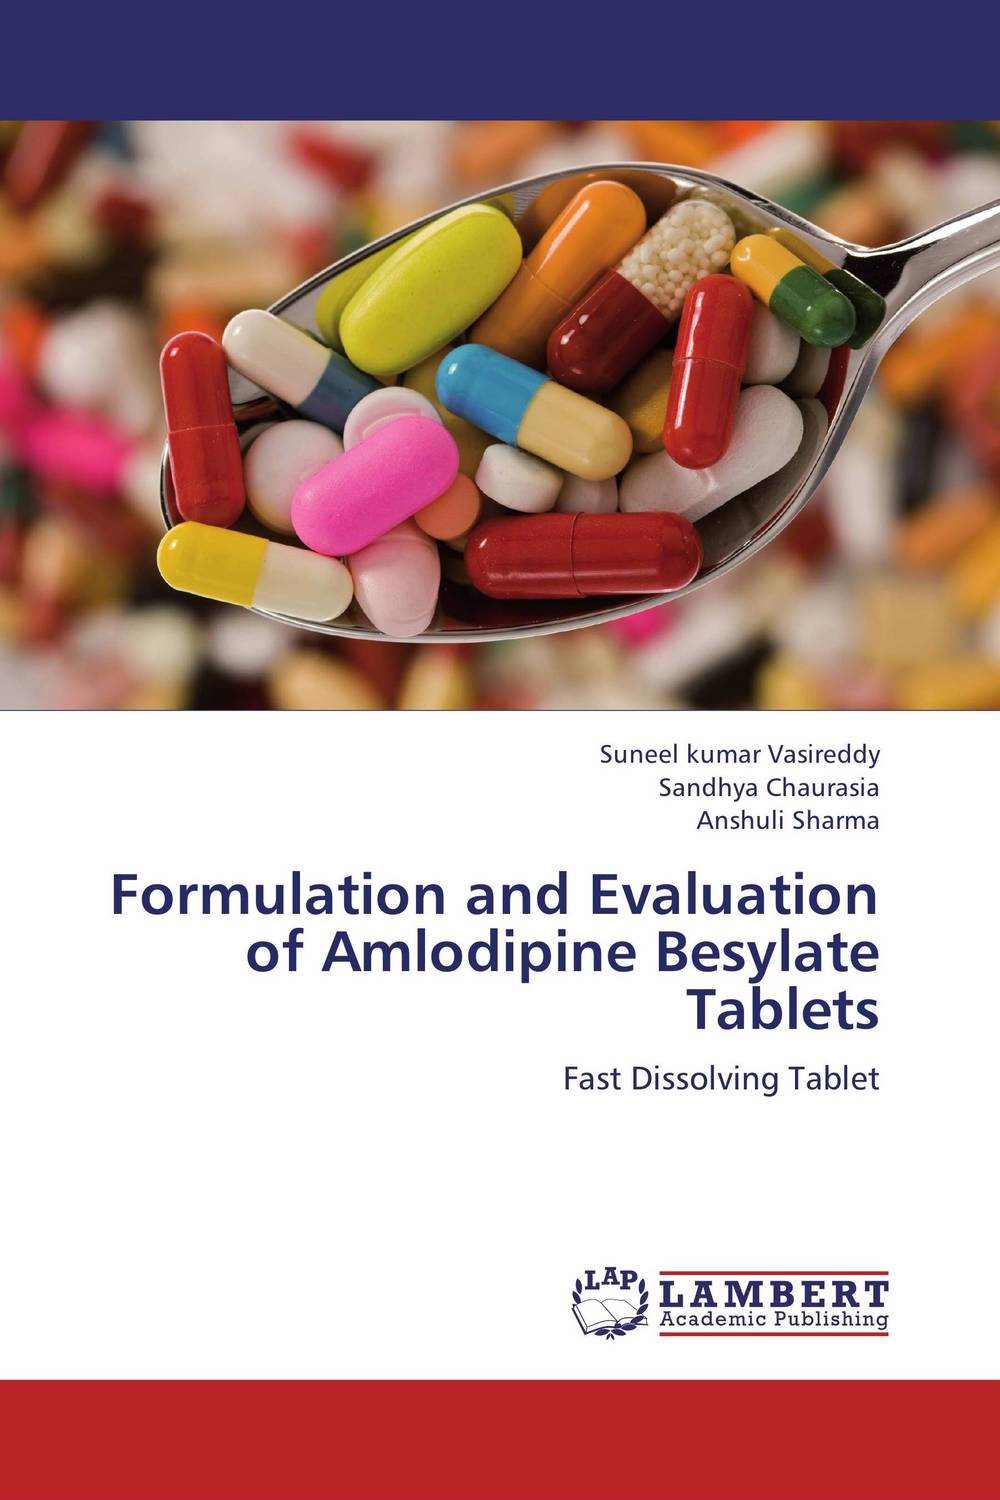 Formulation and Evaluation of Amlodipine Besylate Tablets formulation and evaluation of microspheres by mixed solvency concept